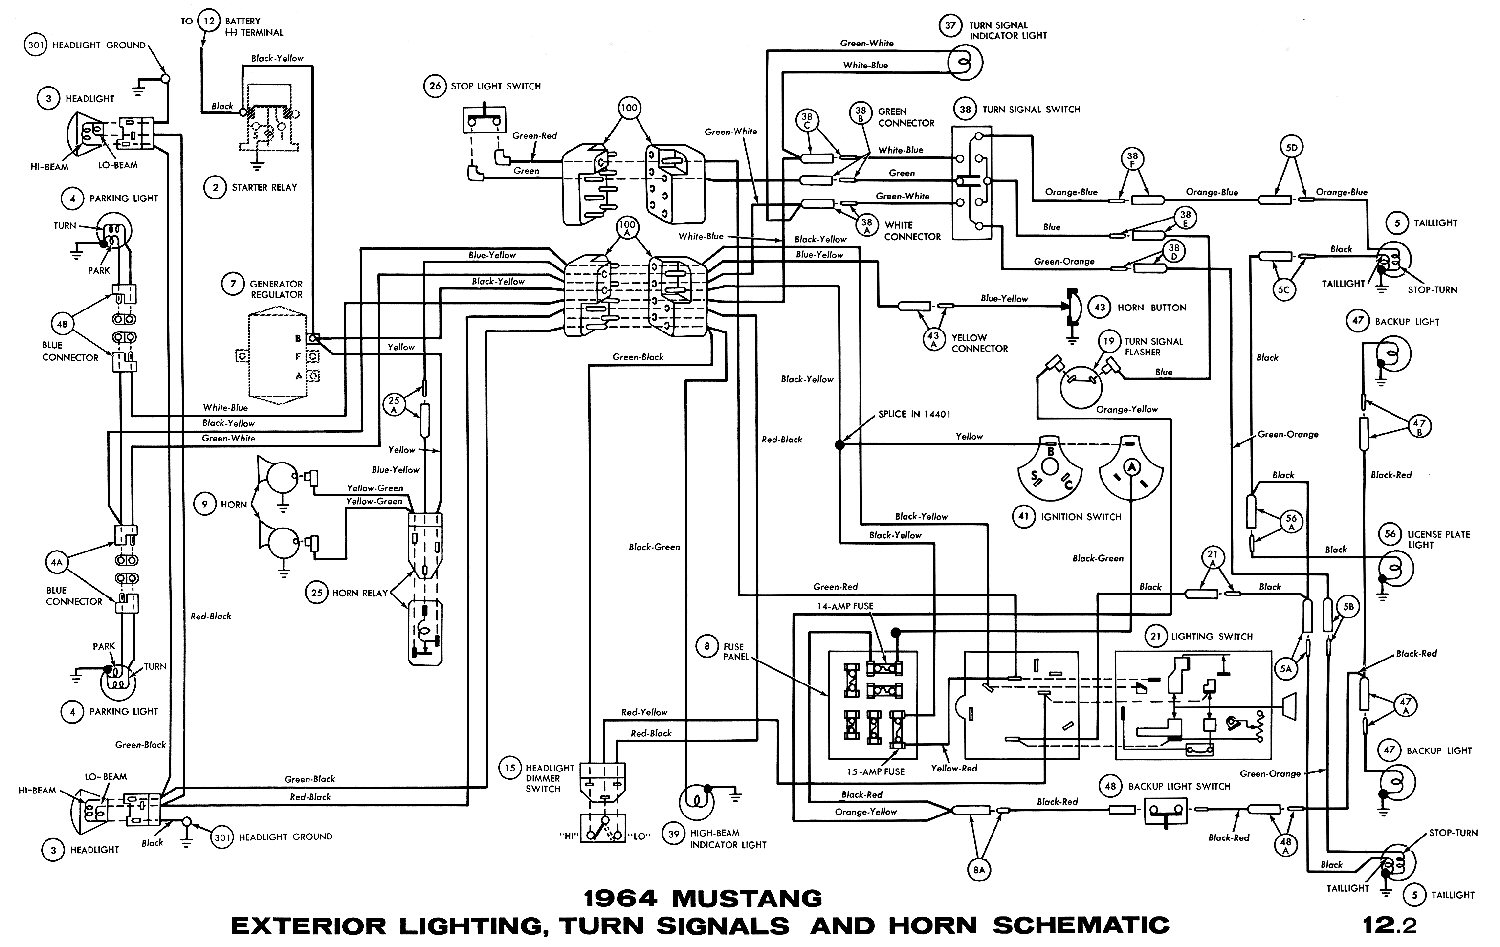 1964i 1964 mustang wiring diagrams average joe restoration 1965 mustang turn signal wiring diagram at bakdesigns.co